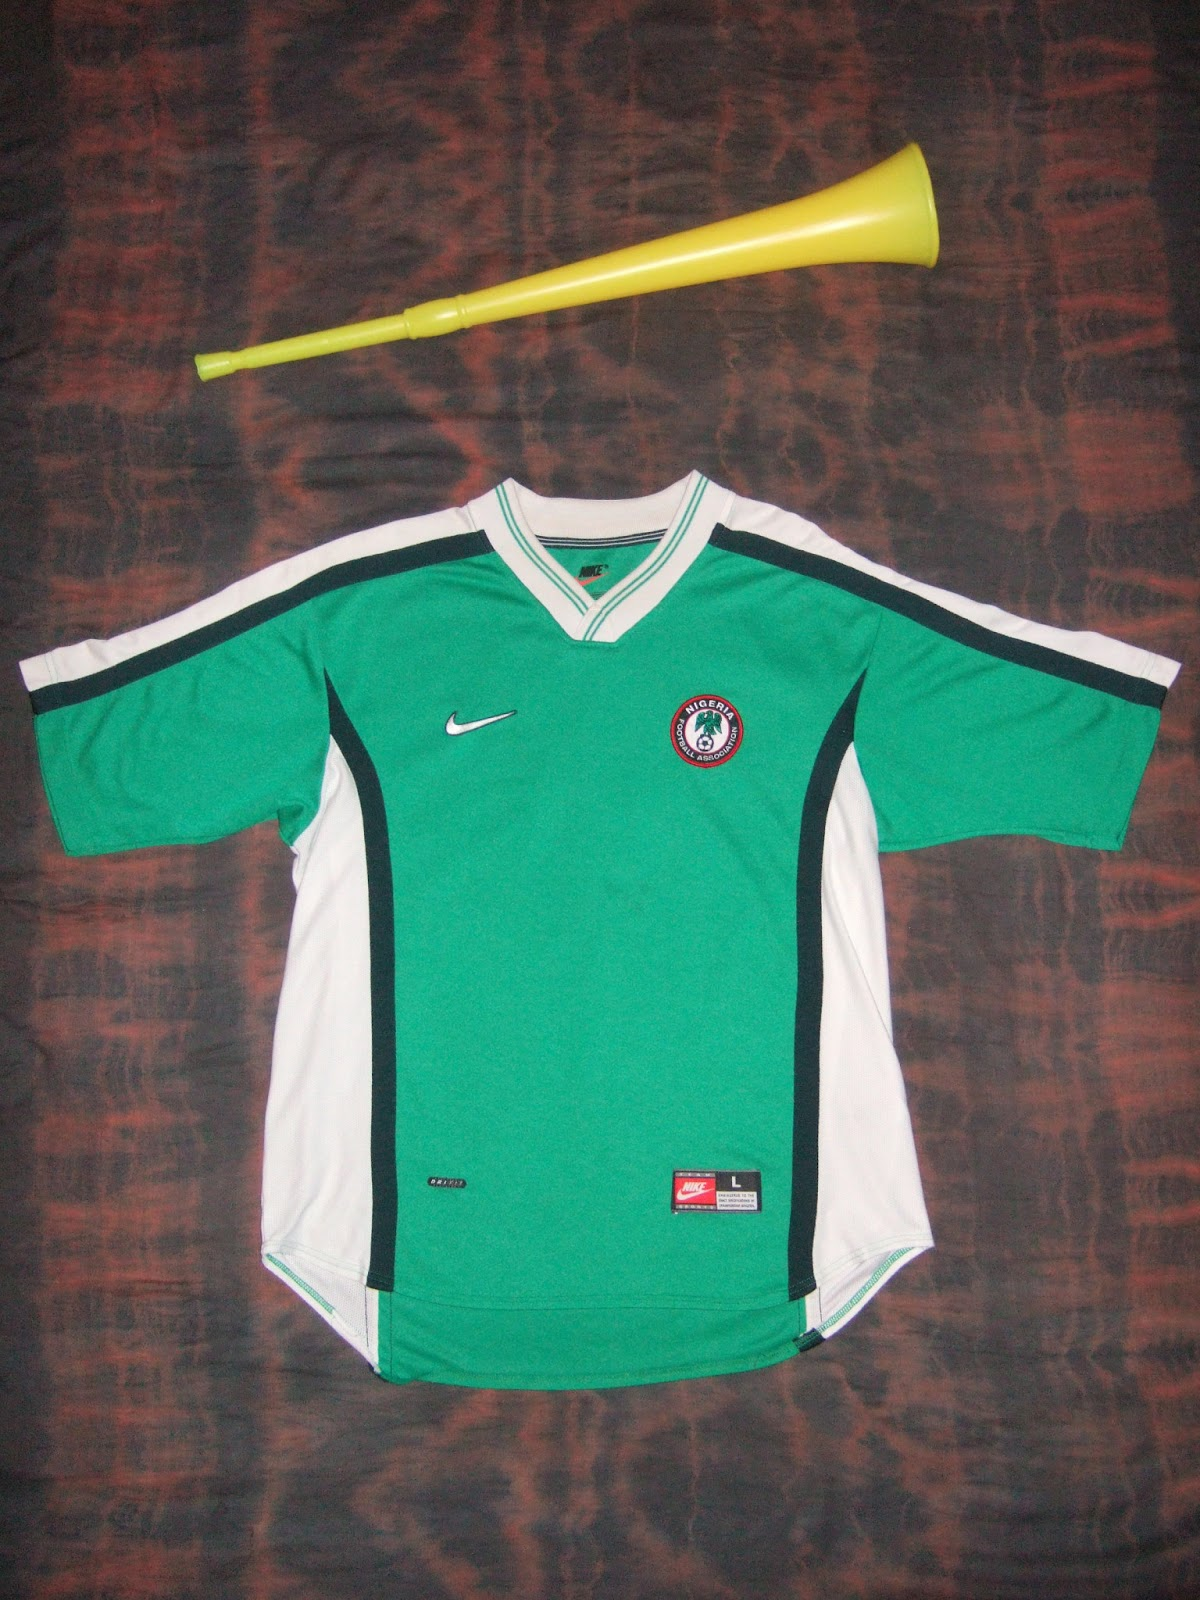 Shirt design in nigeria - A Nice Design By Nike Rather Unlike Any Other Shirt In My Possession The Material Is Quite Heavy Duty And The Badge Is Nice Quality